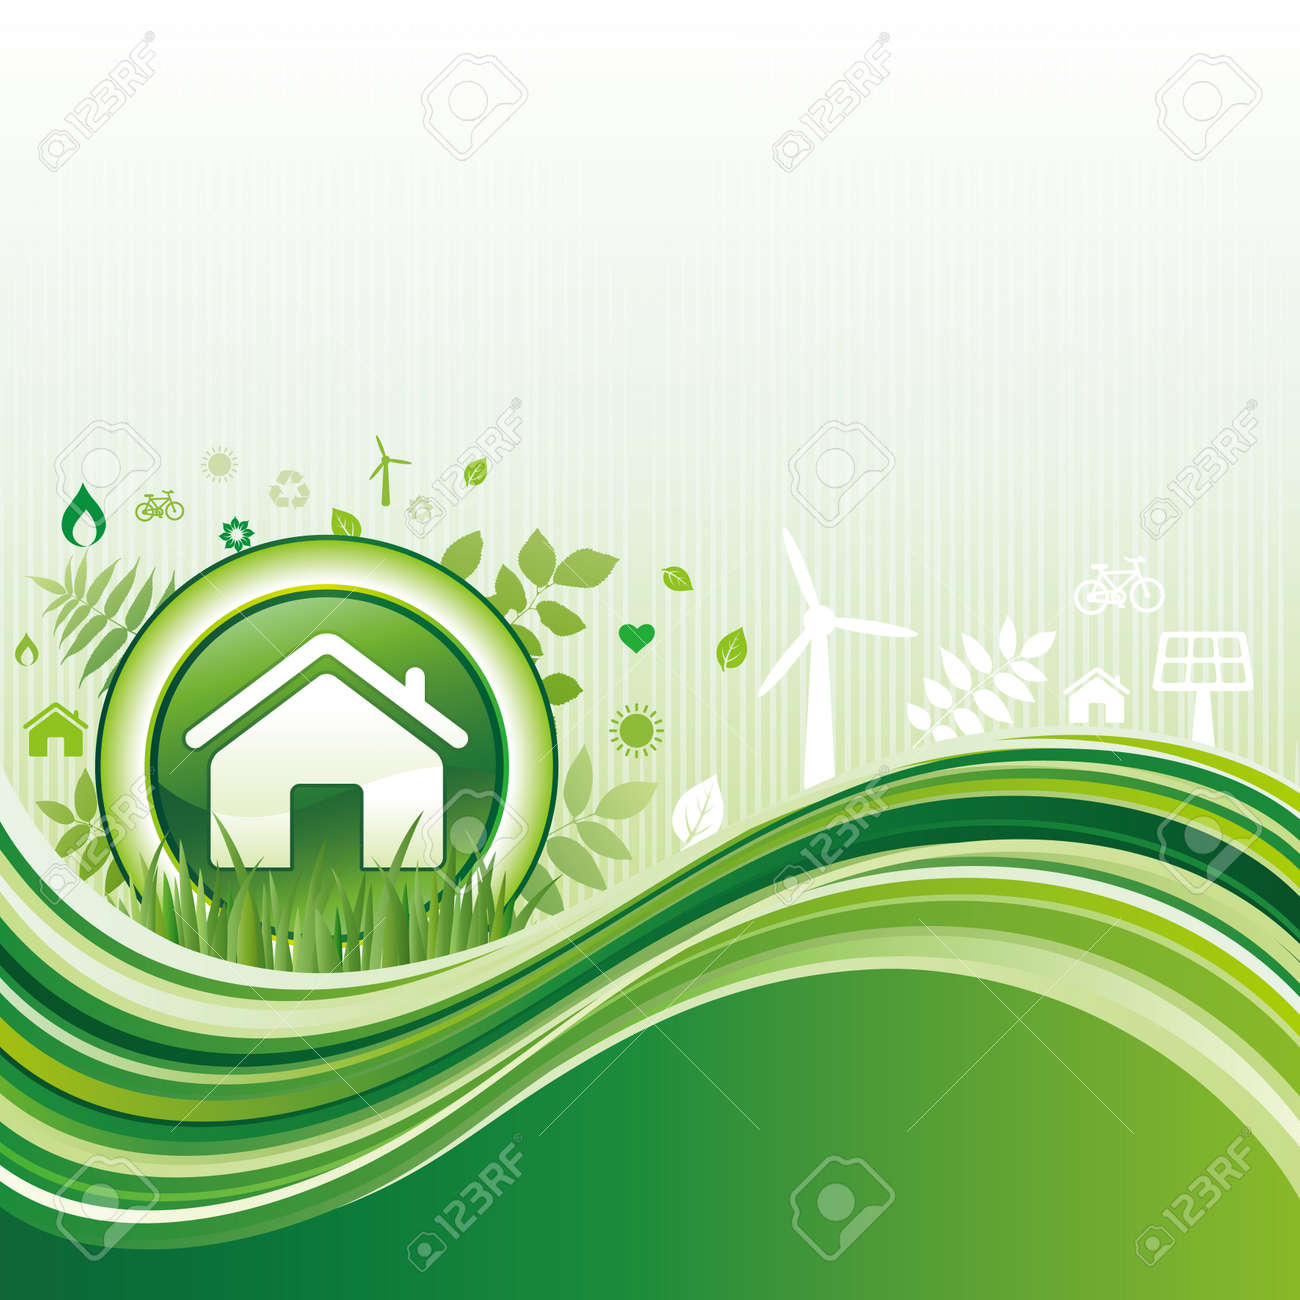 background of environment Stock Vector - 8174100